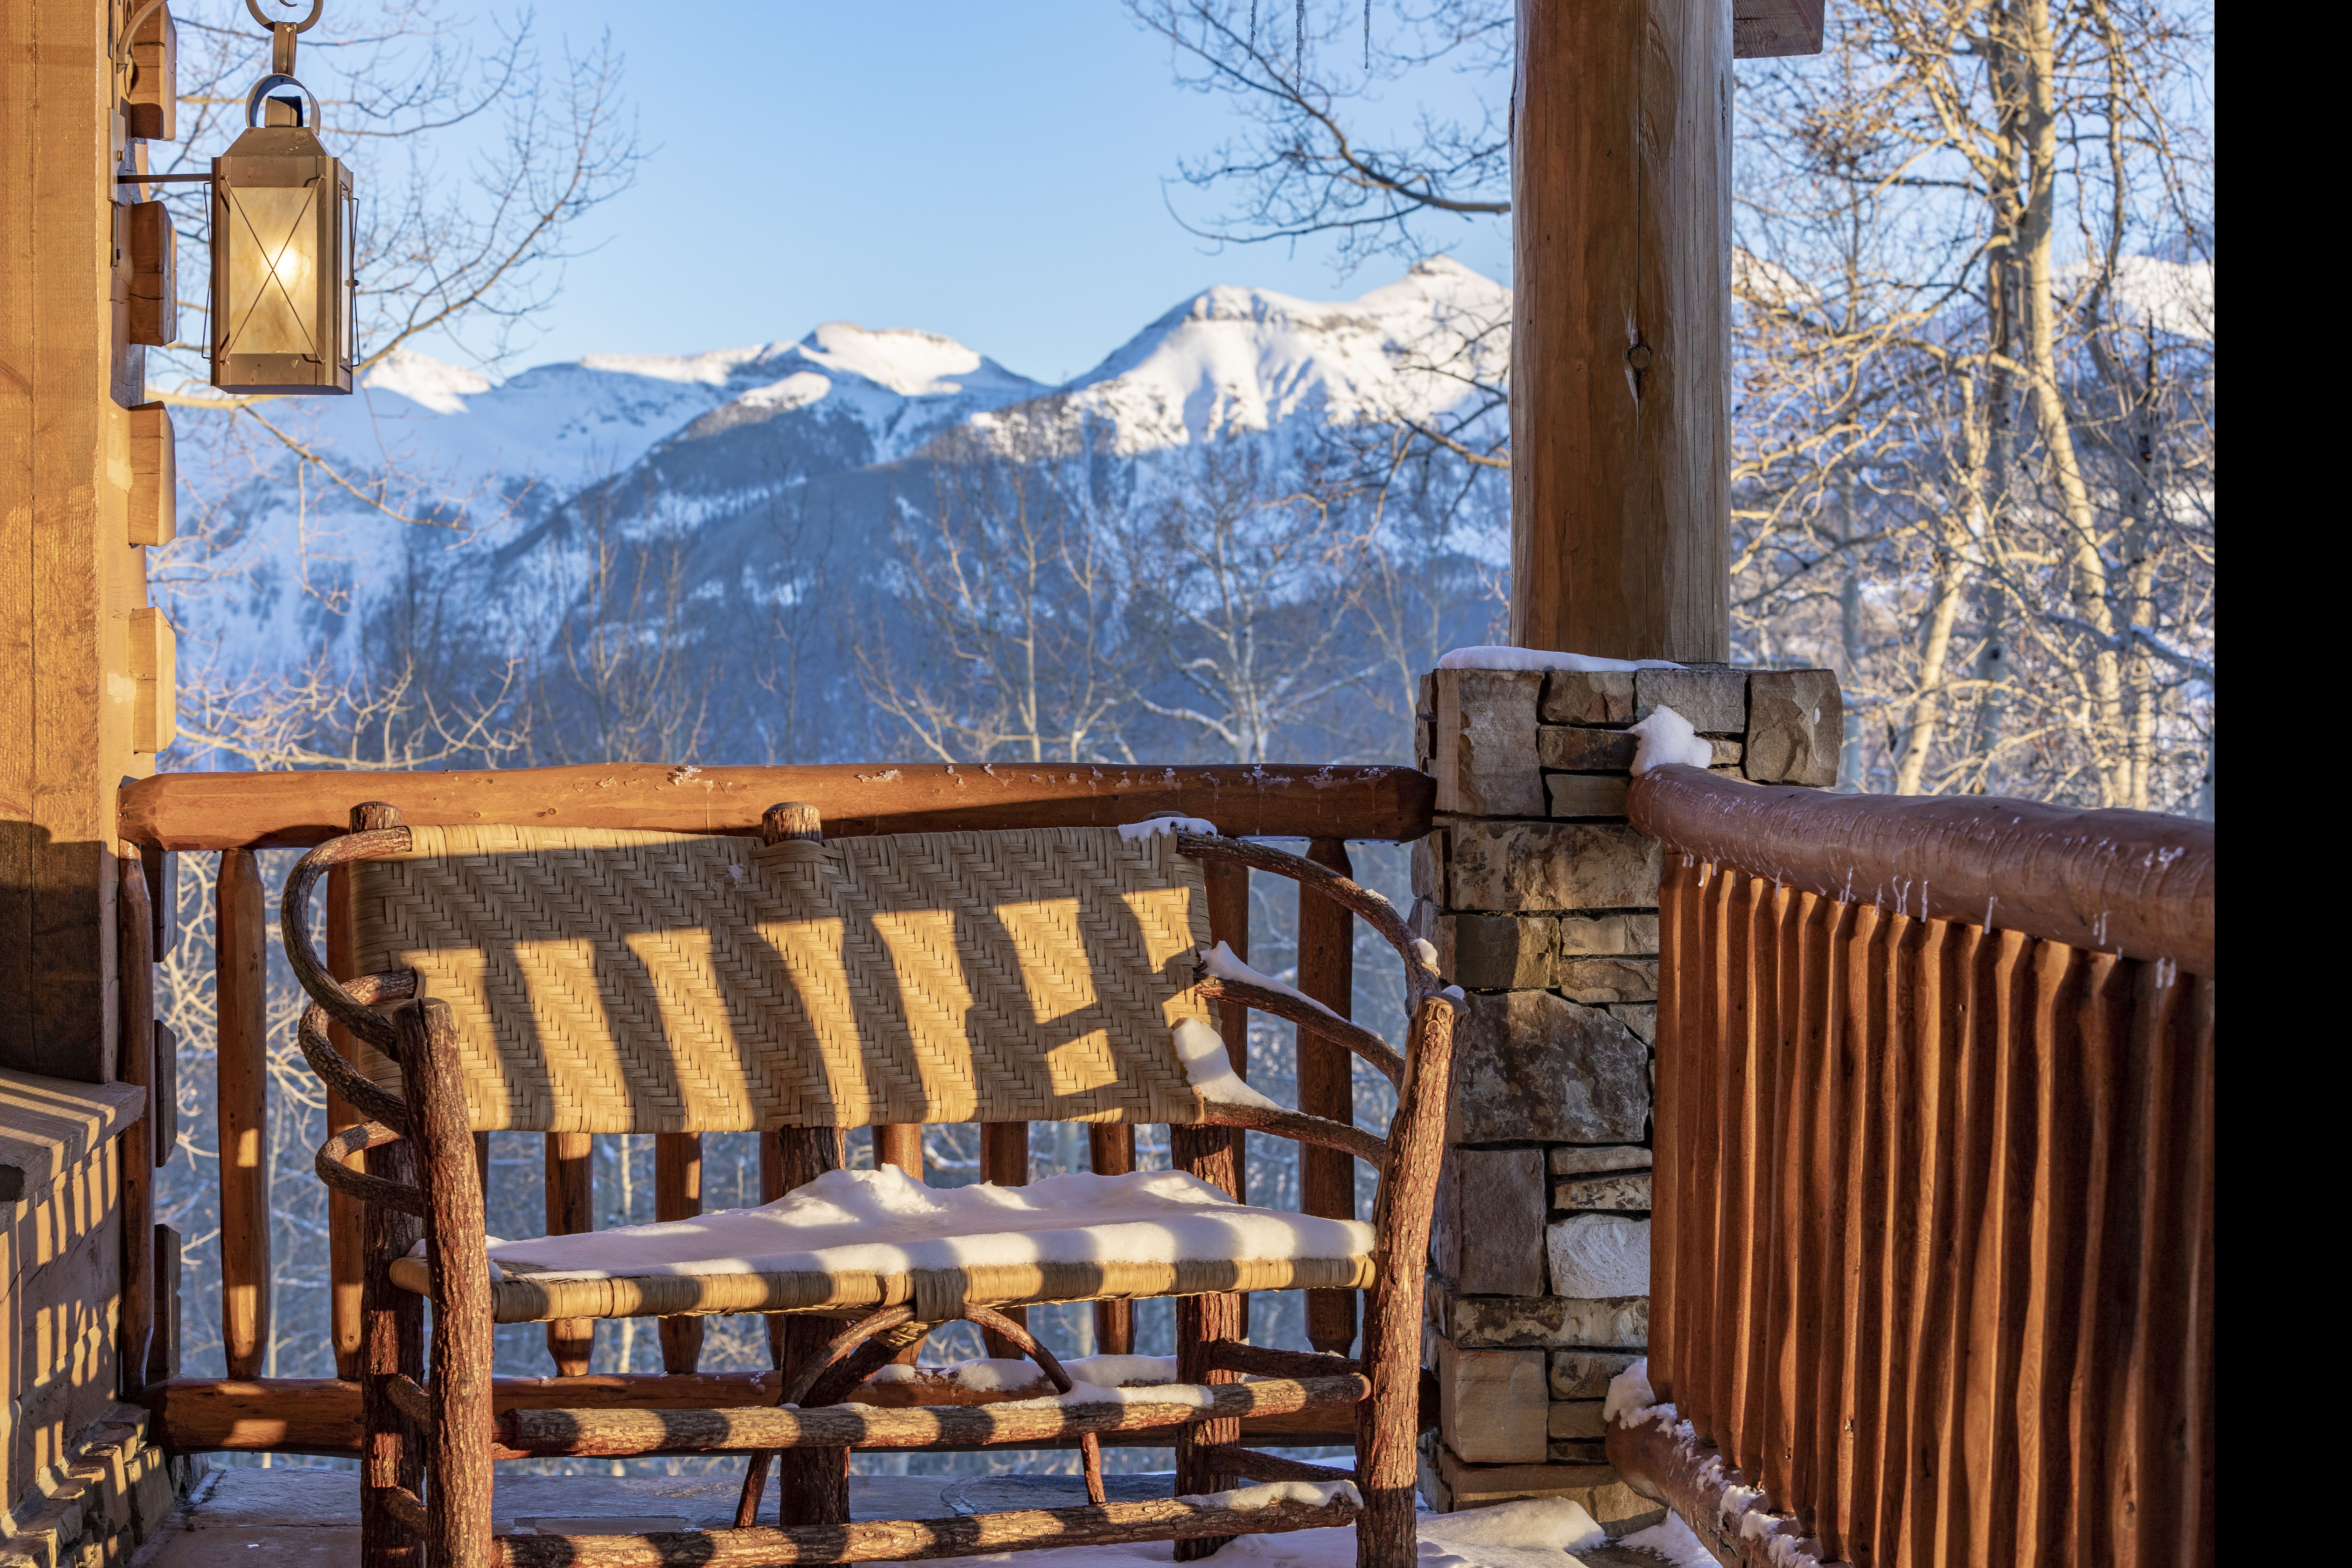 Tom Cruise's Telluride Ranch porch at sunset